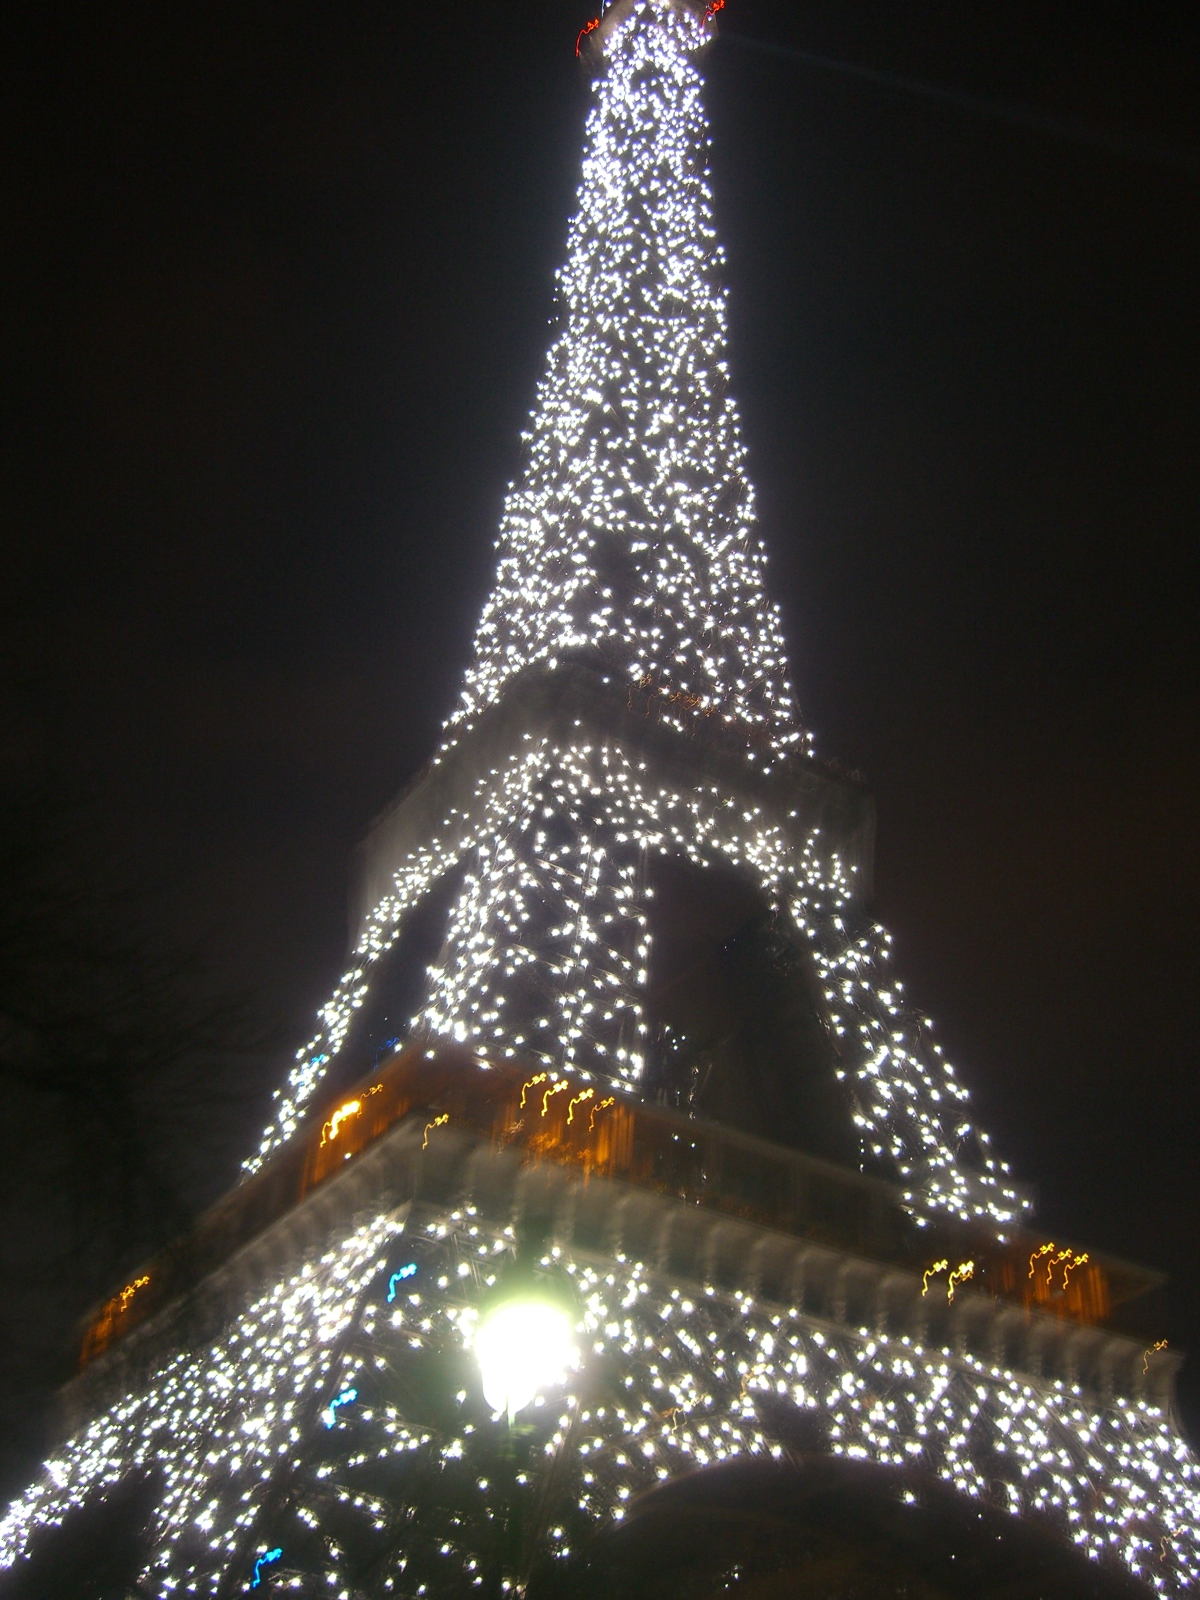 Eiffel Tower at Night | 365+ Things I Love About France